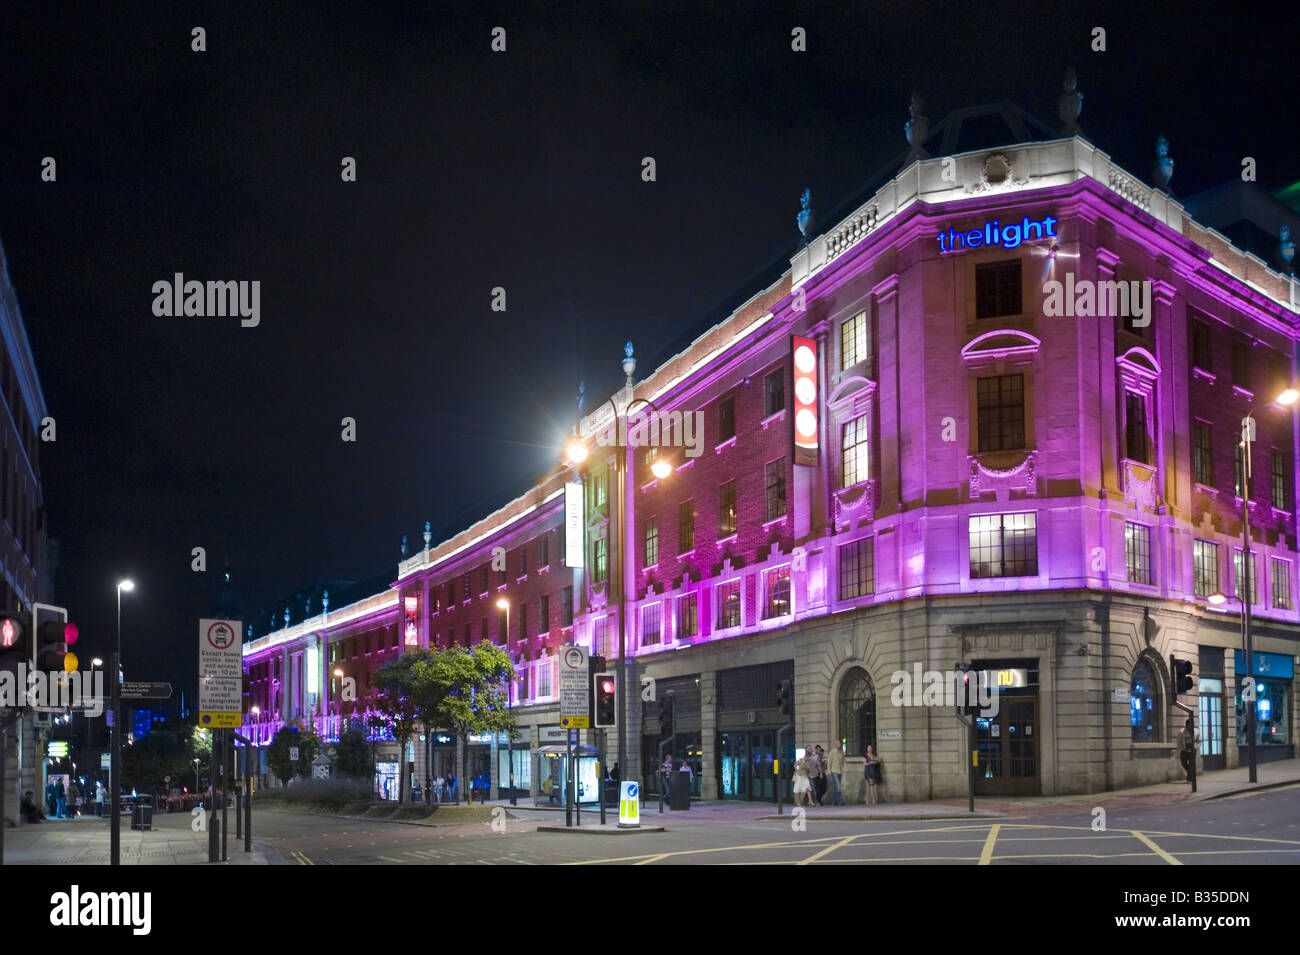 The Light shopping centre at night, The Headrow, Leeds, West Yorkshire, England - Stock Image